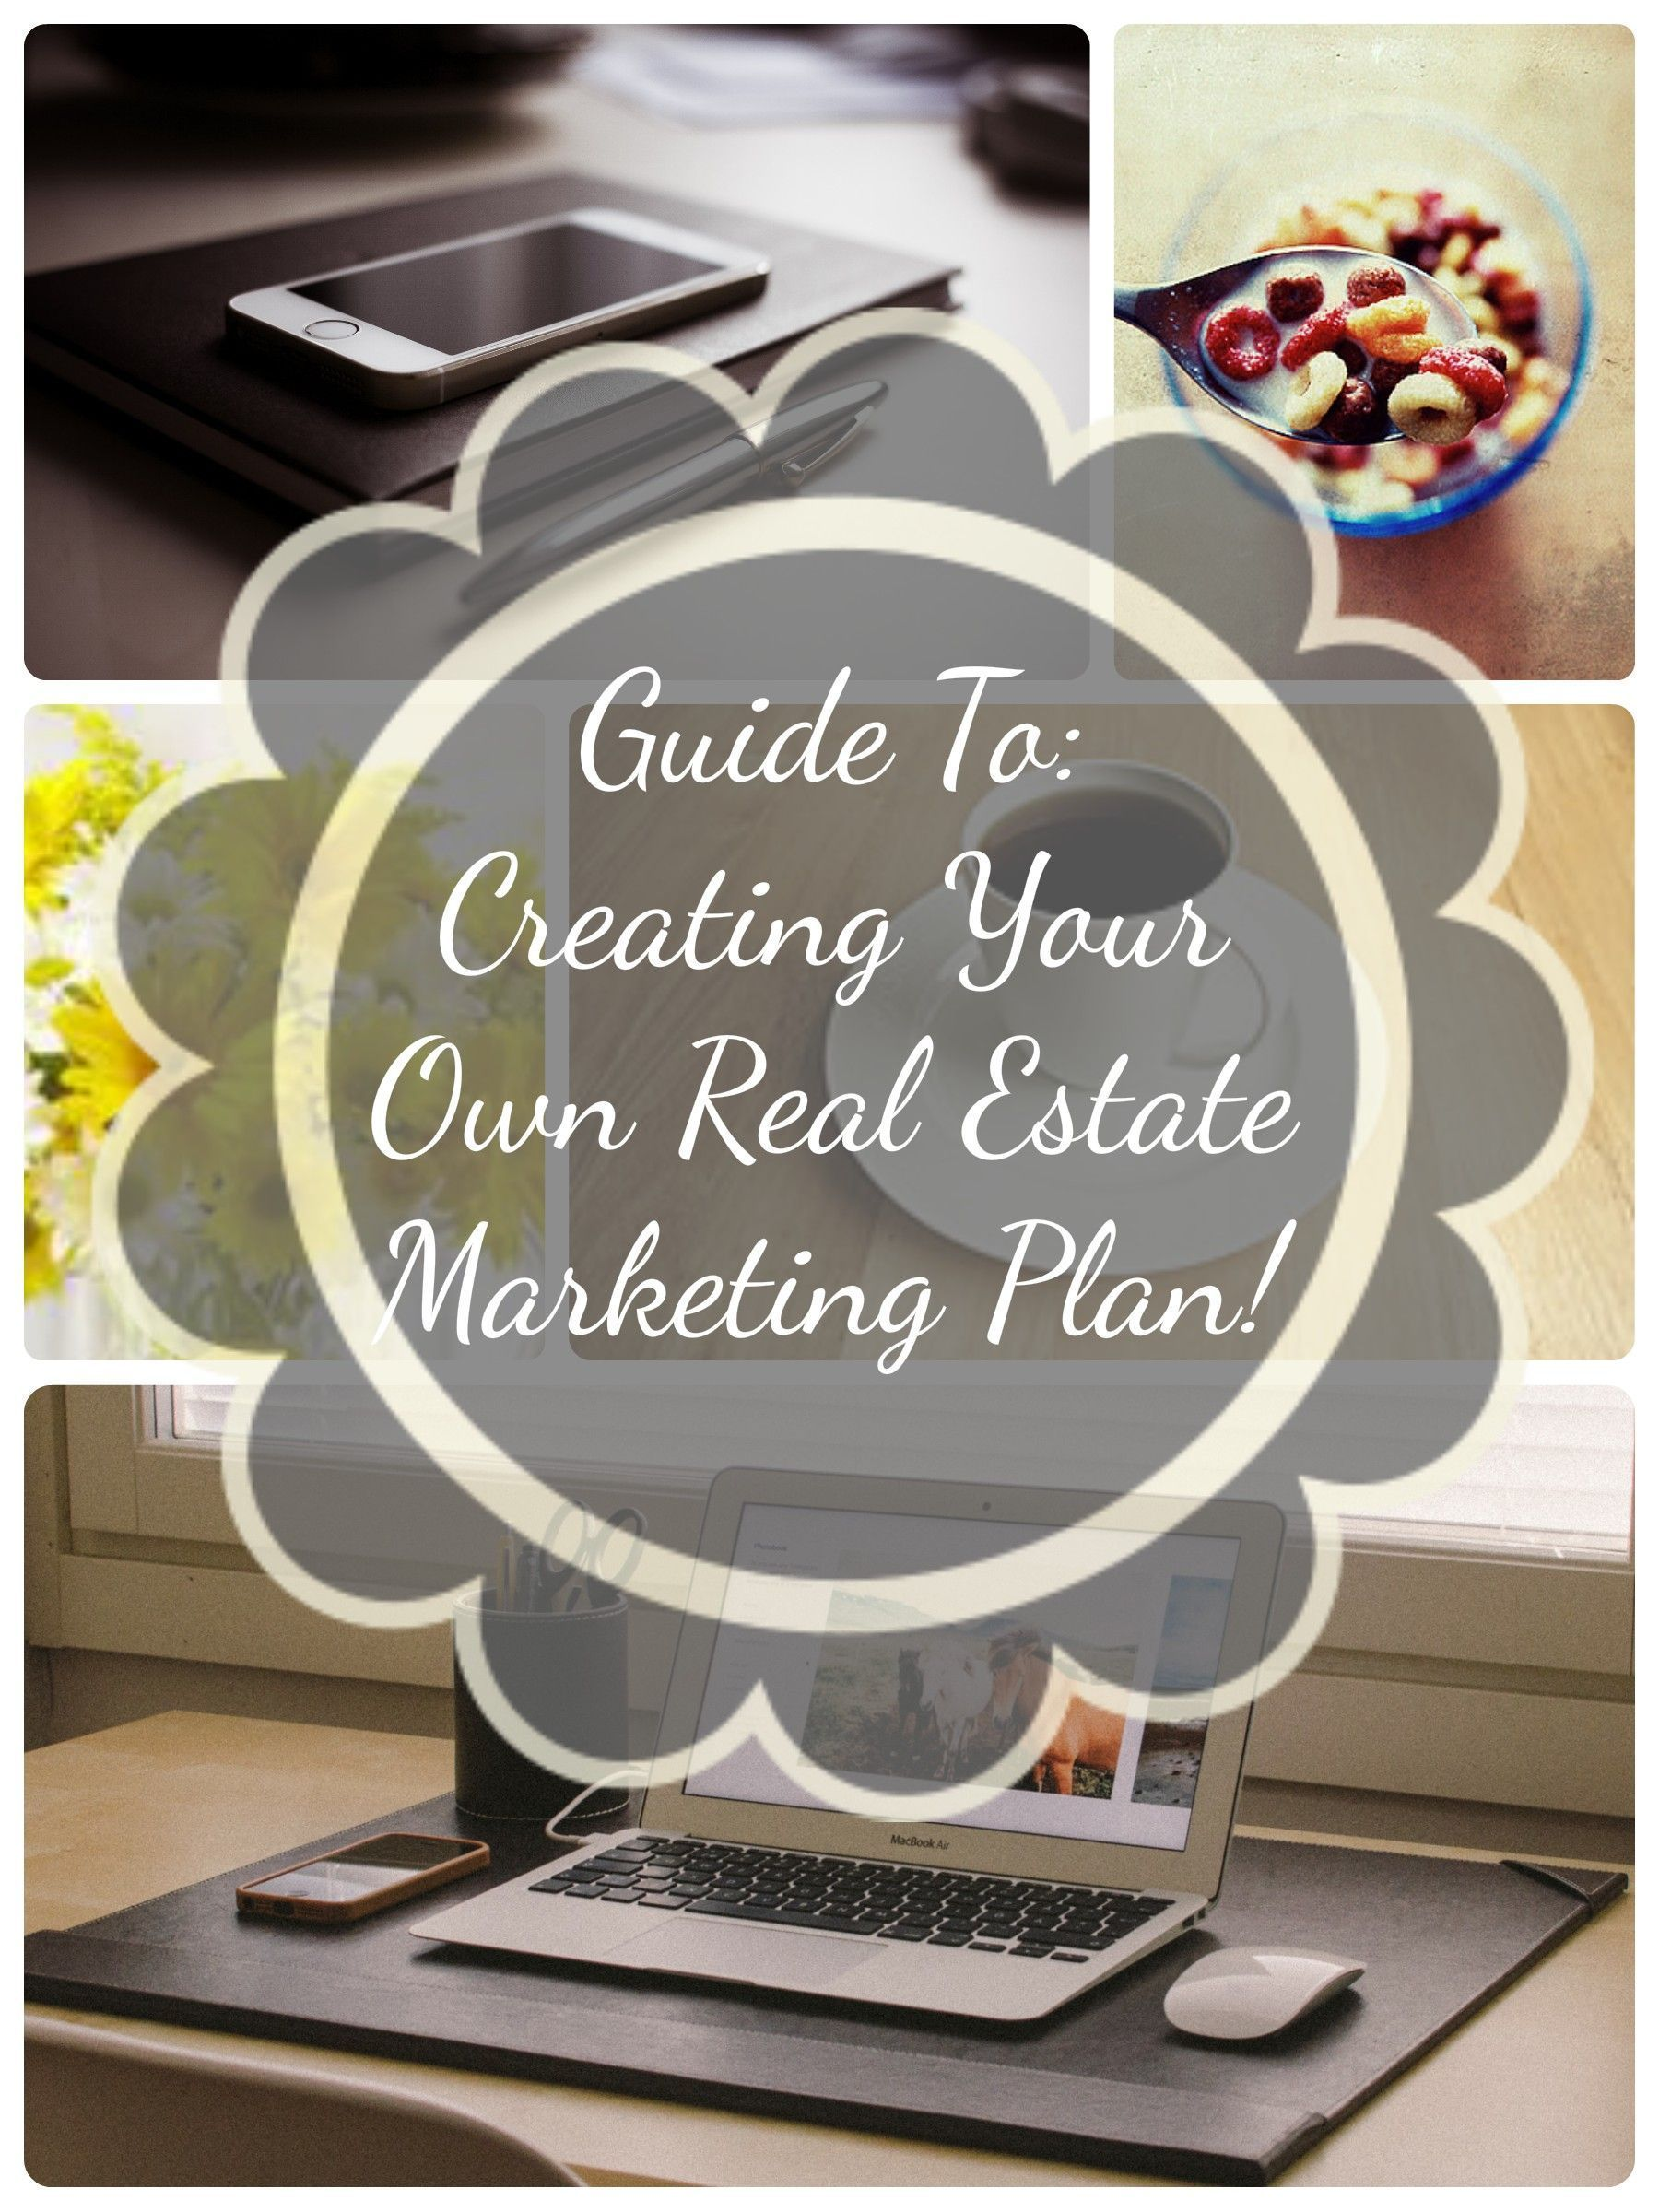 Guide To Creating Your Own Real Estate Marketing Plan Very Simple